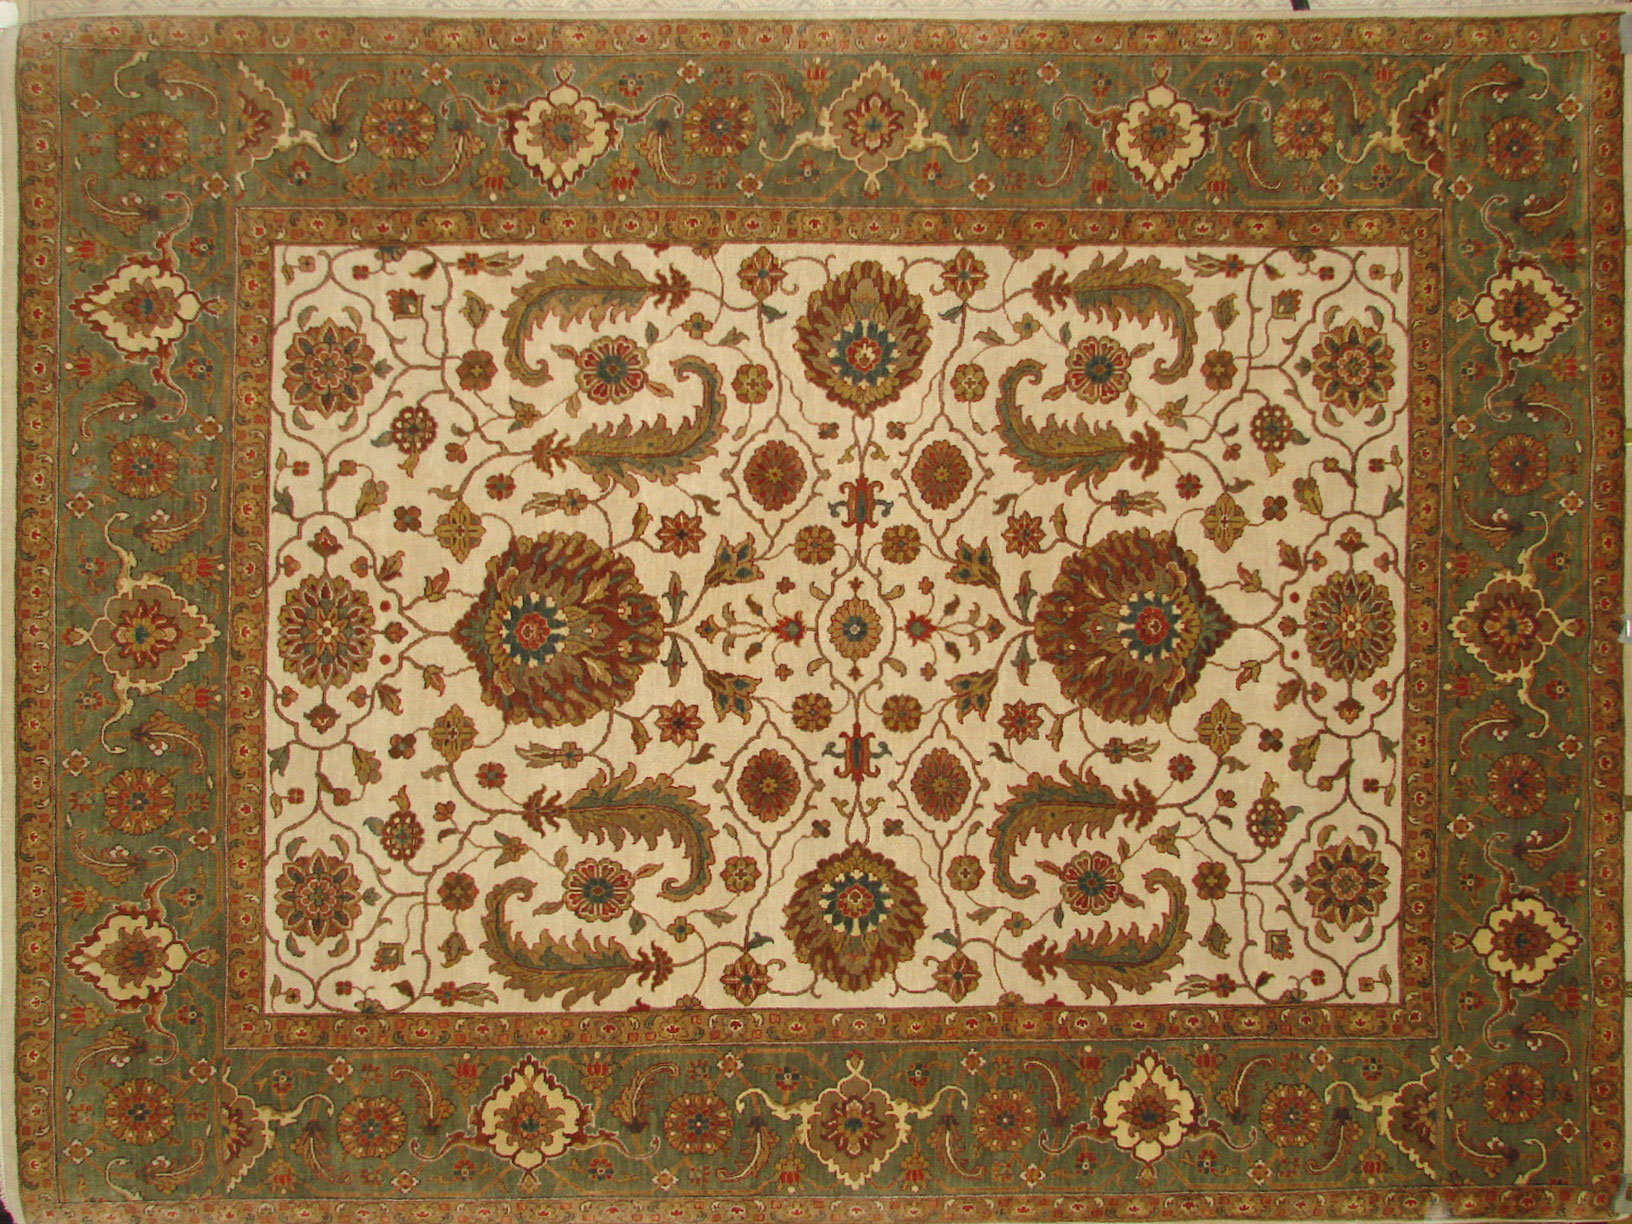 8x10 Antique Revival Hand Knotted Wool Area Rug - MR18397